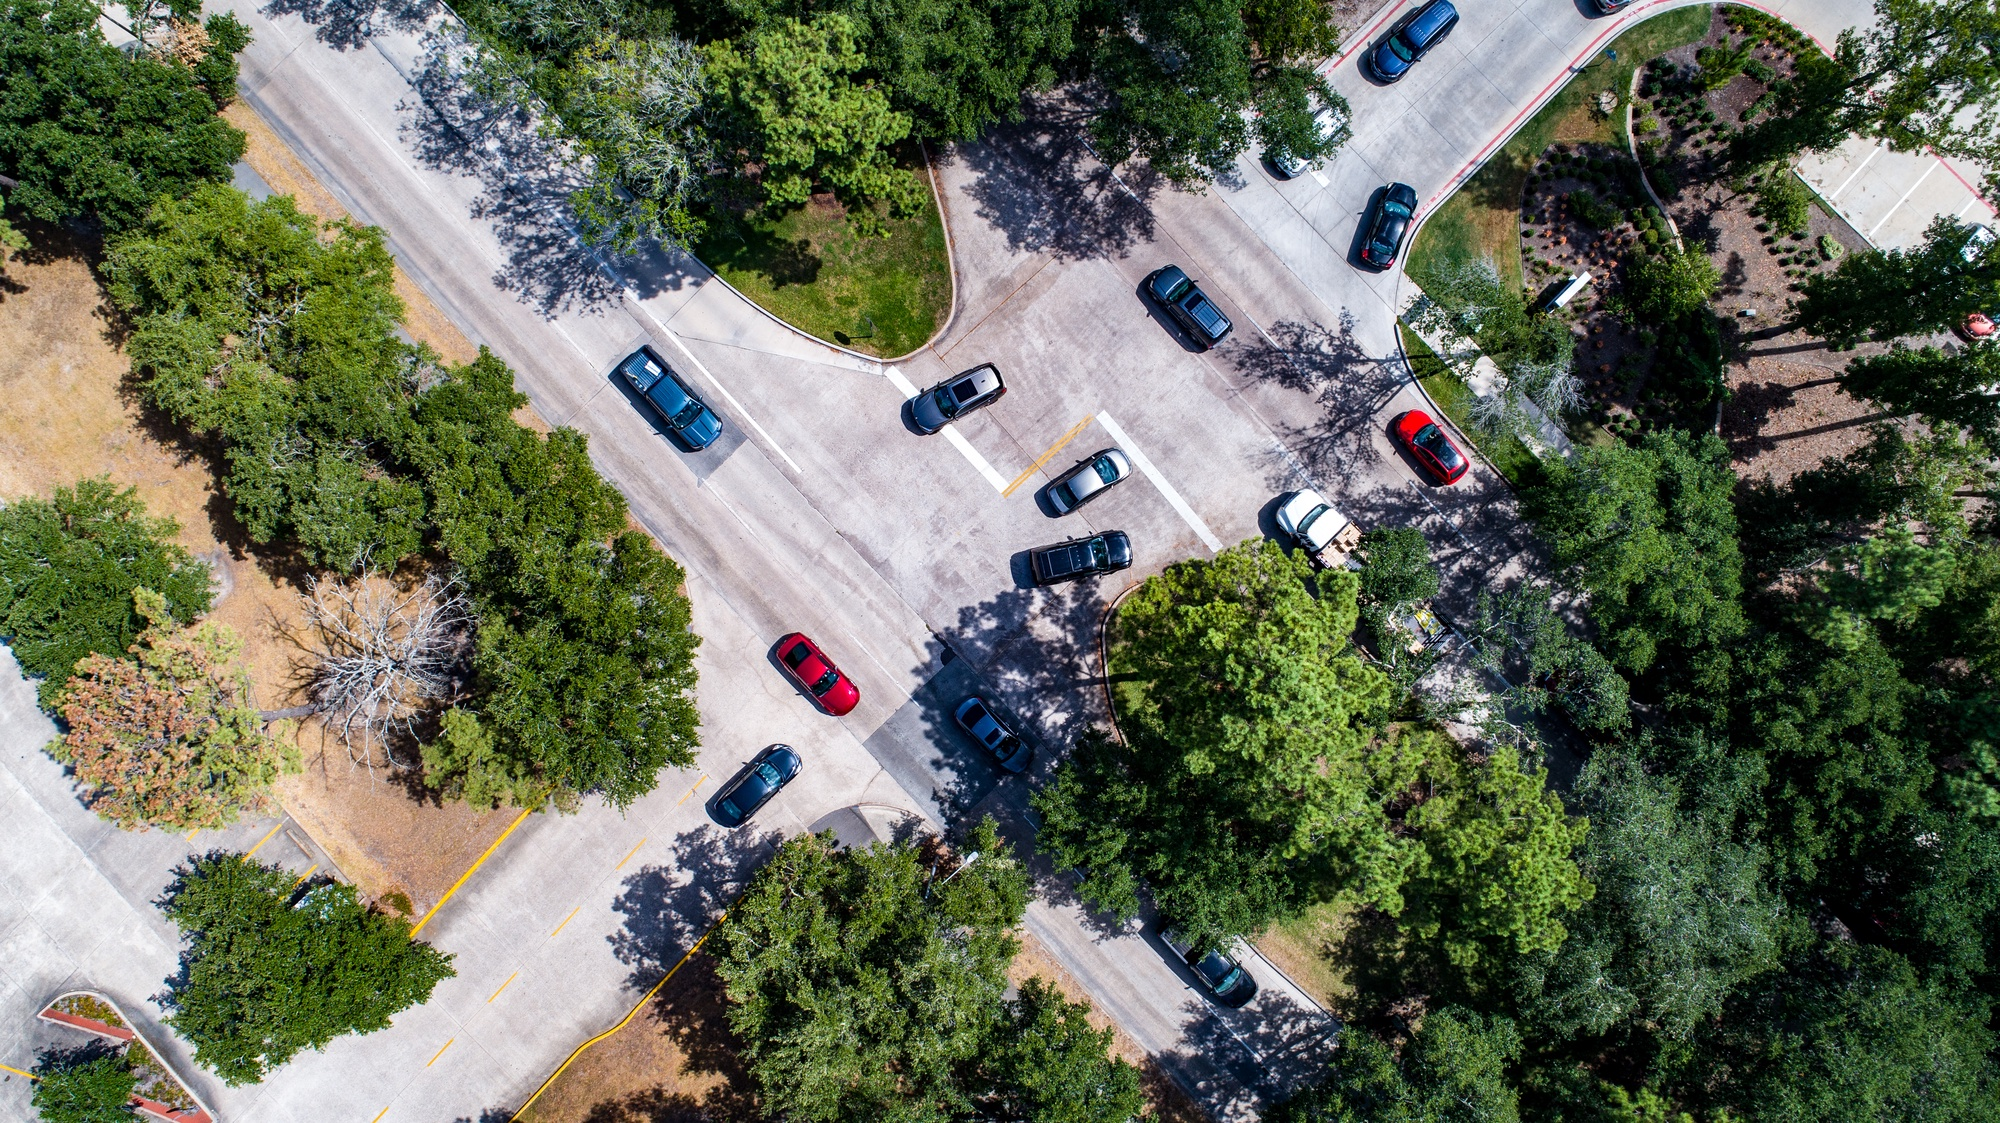 Legal Drone Photography